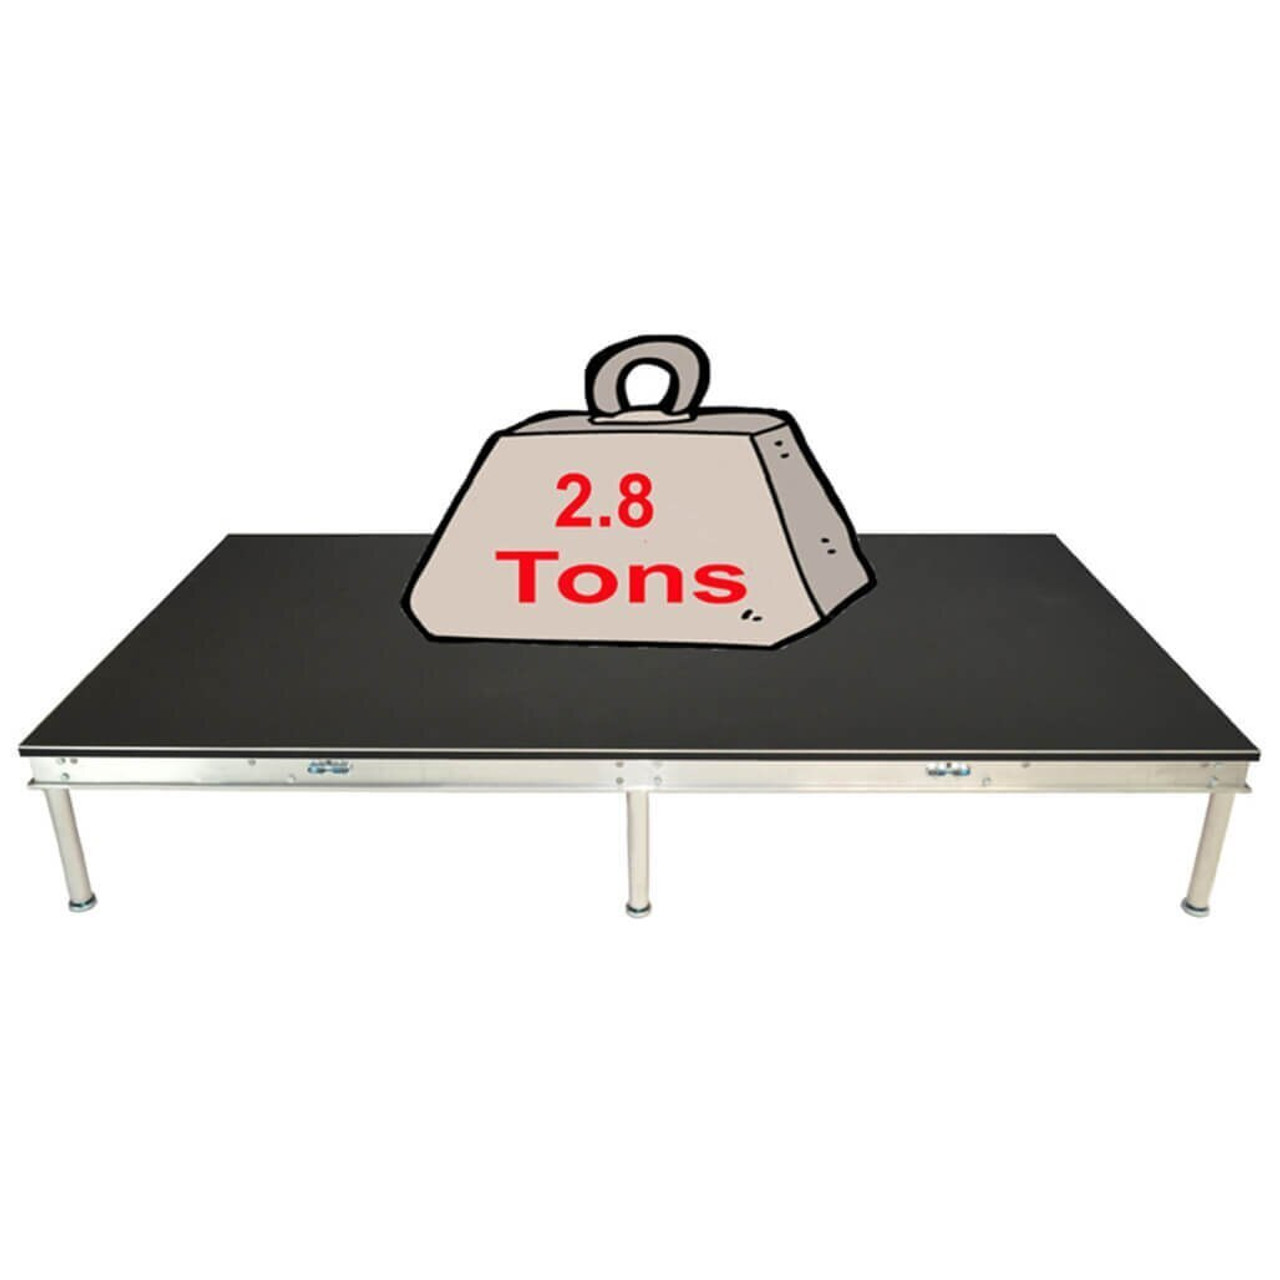 Top rated Quik Stage 8' x 8' High Portable Stage Package with Black Polyvinyl Non-Skid Surface. Additional Heights and Surfaces Available. - Holds 2.8 tons per 4 x 8 or 1.4 tons per 4 x 4 when spread out evenly.